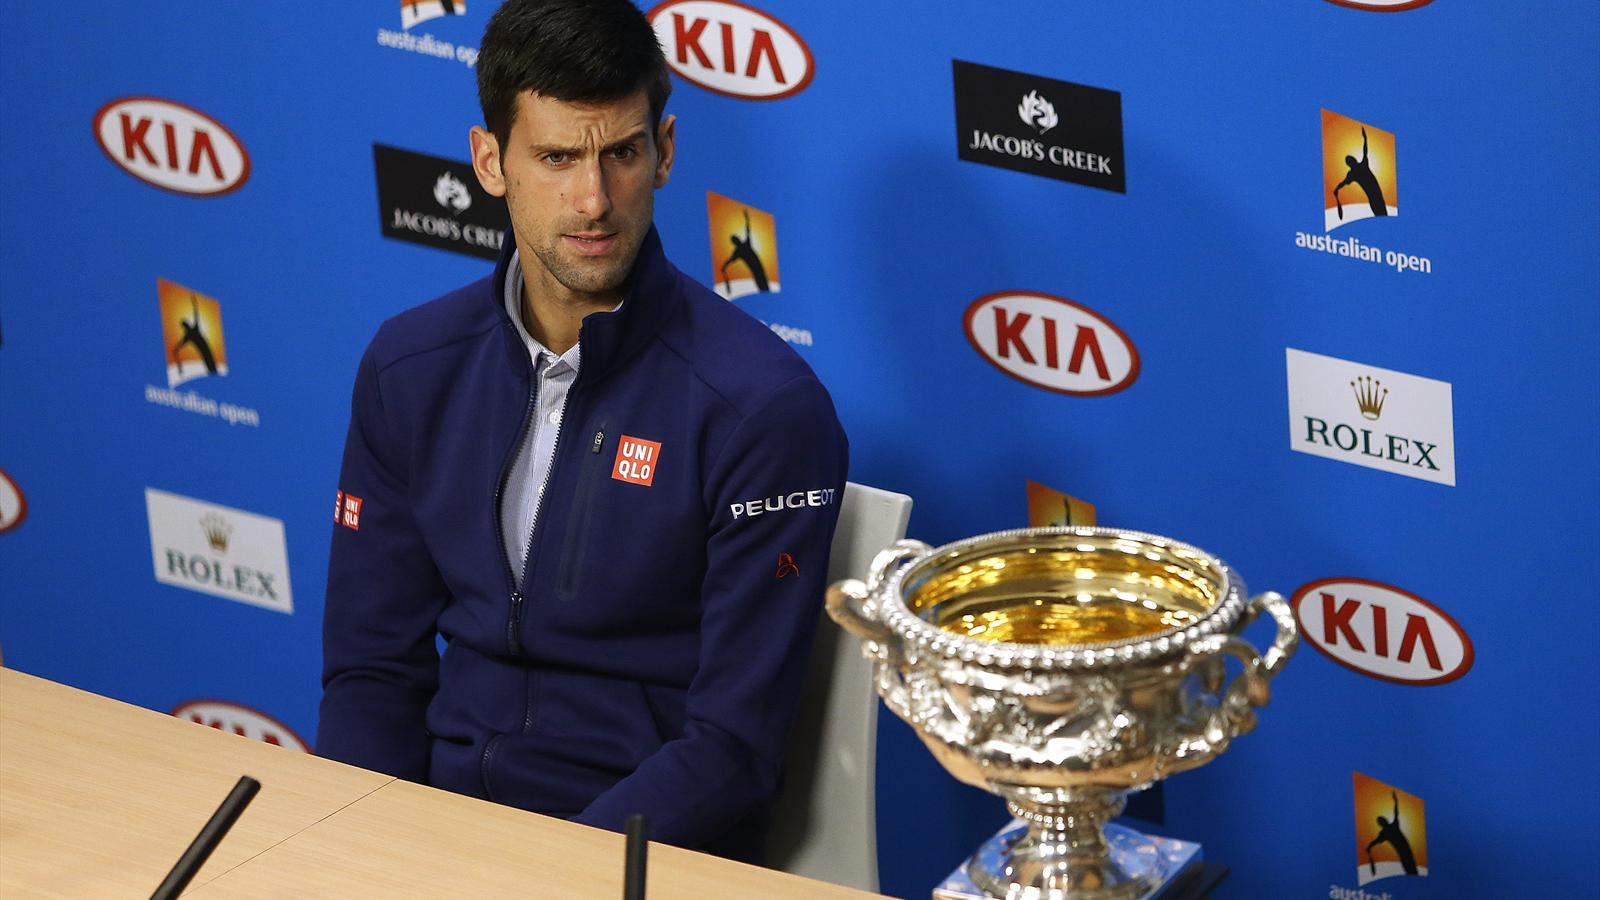 Serbia's Novak Djokovic sits beside the men's singles trophy during a news conference after winning the men's singles final match at the Australian Open